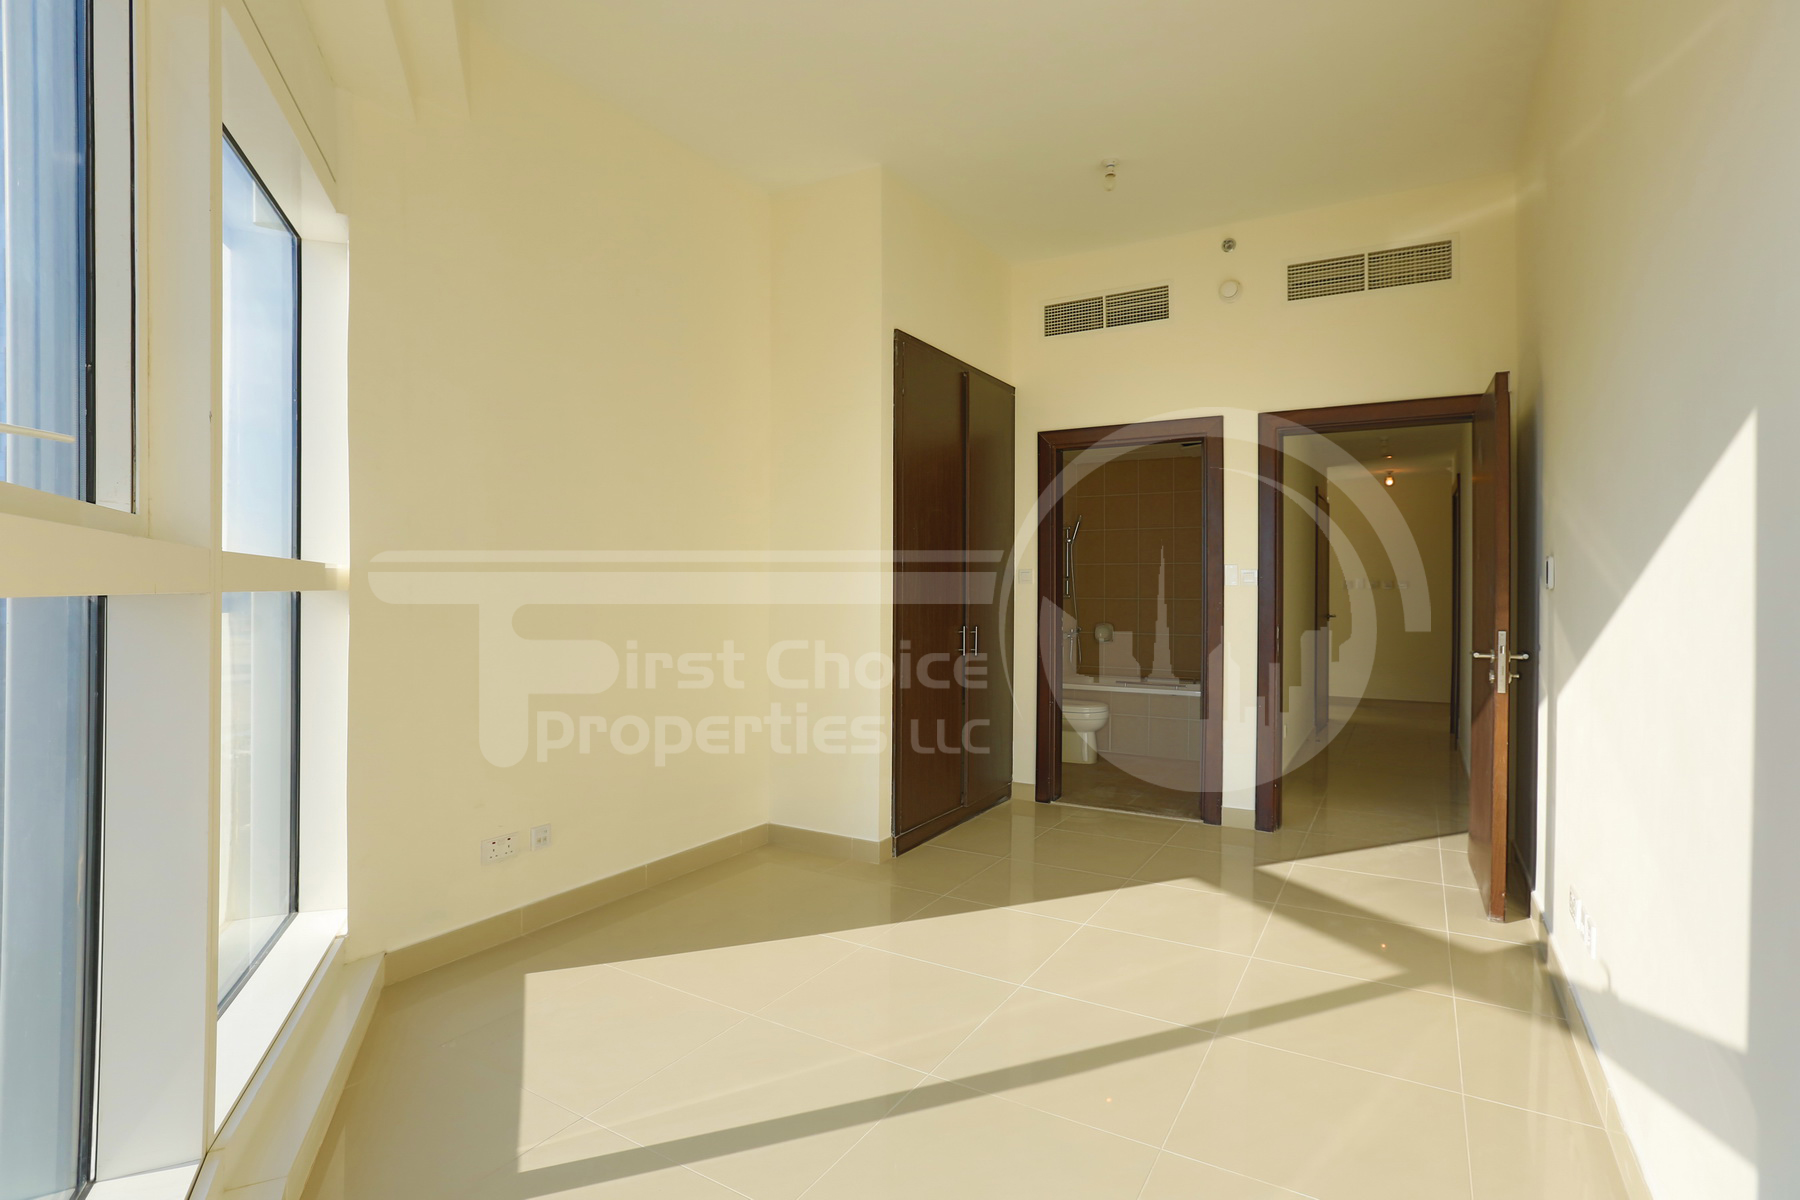 3BR Apartment - Abu Dhabi - UAE - Al Reem Island - City of Lights - C10 Building (29).JPG